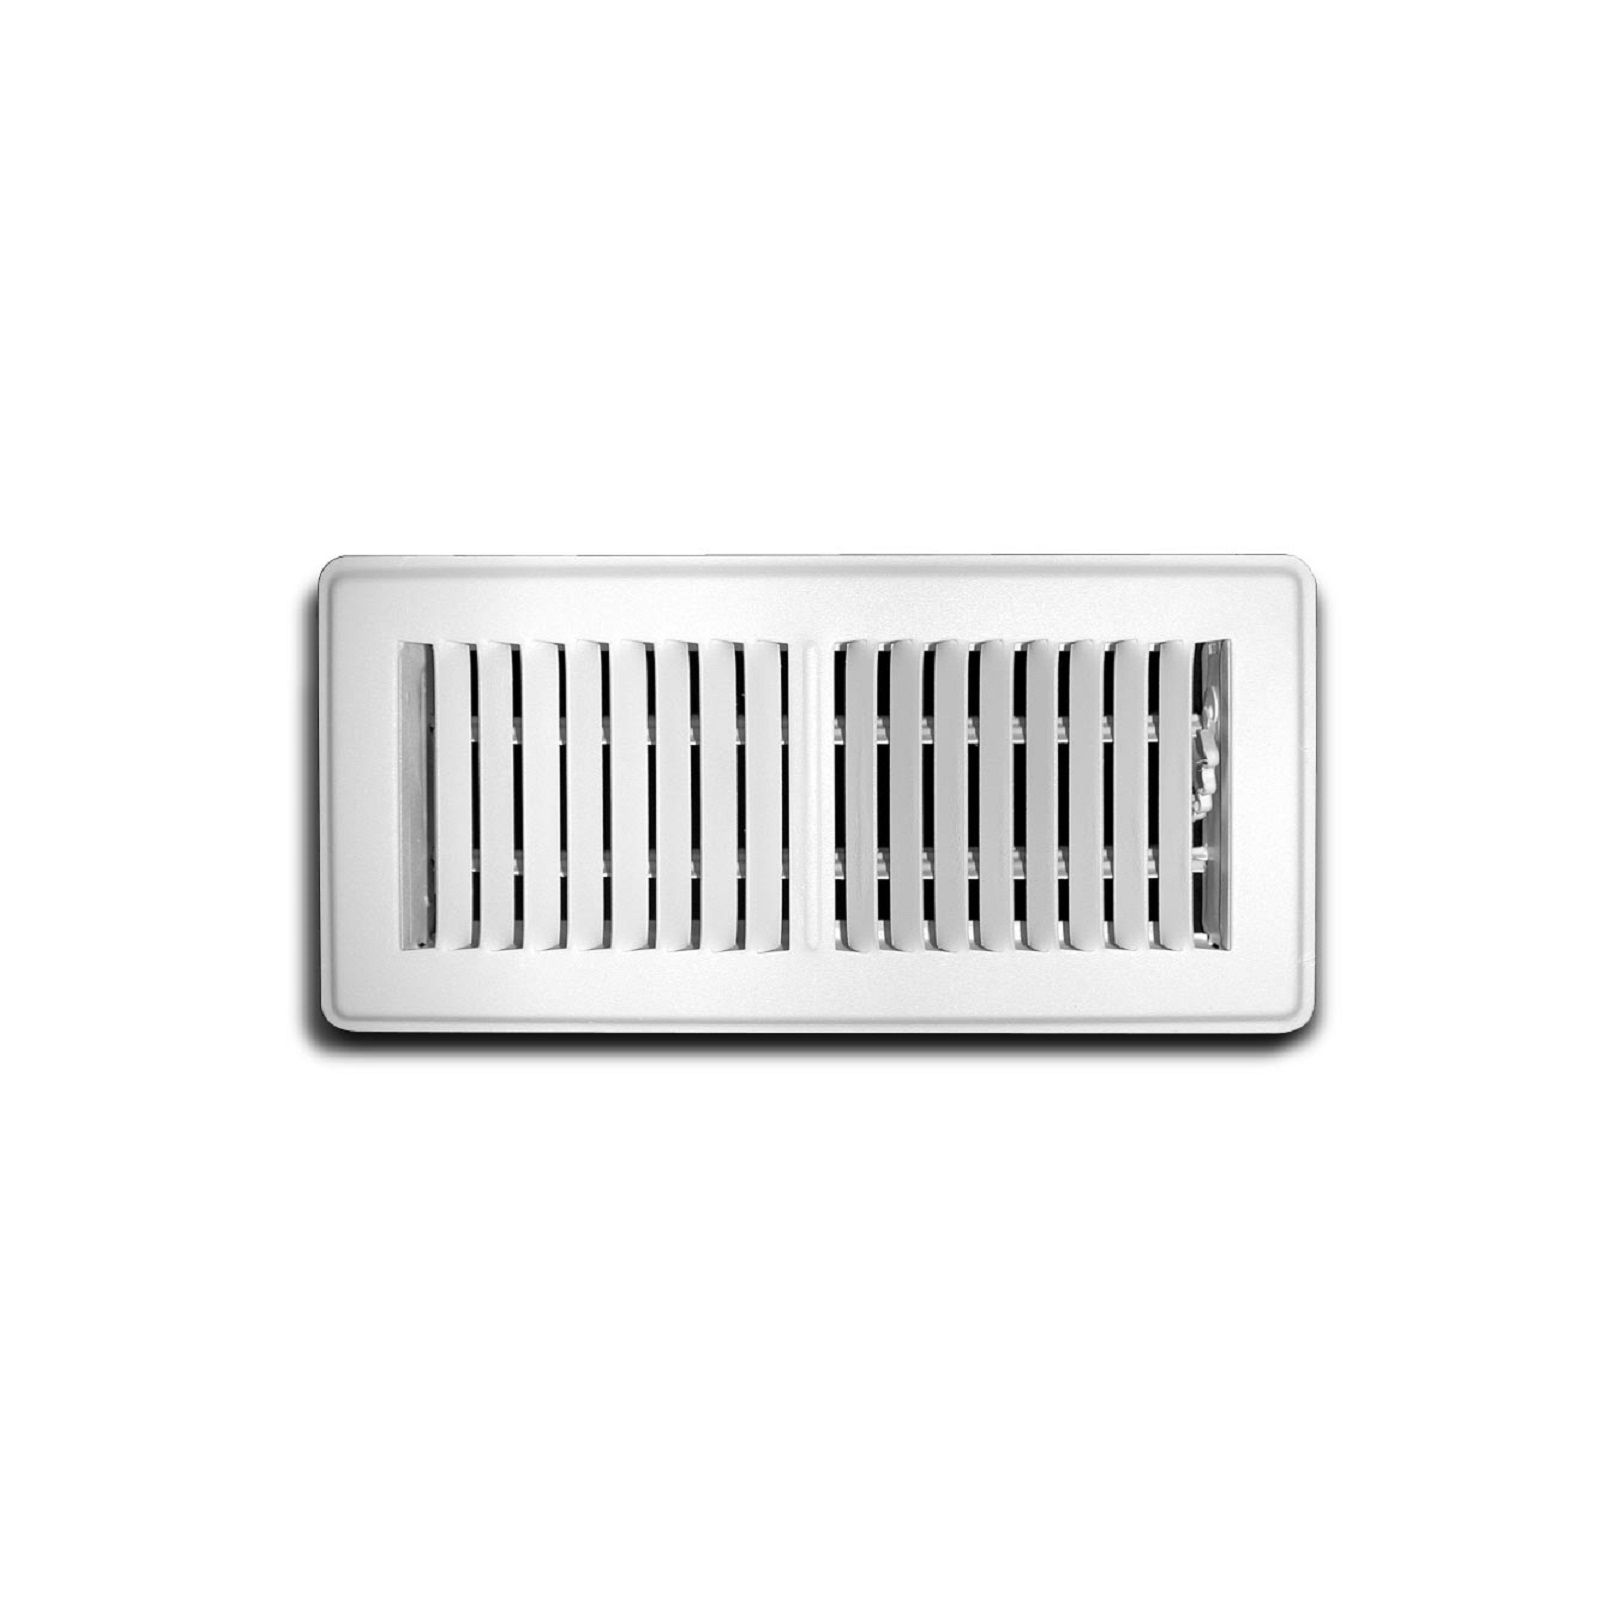 "TRUaire 150MW 06X10 - Steel Stamped Face Floor Diffuser, White, 06"" X 10"""